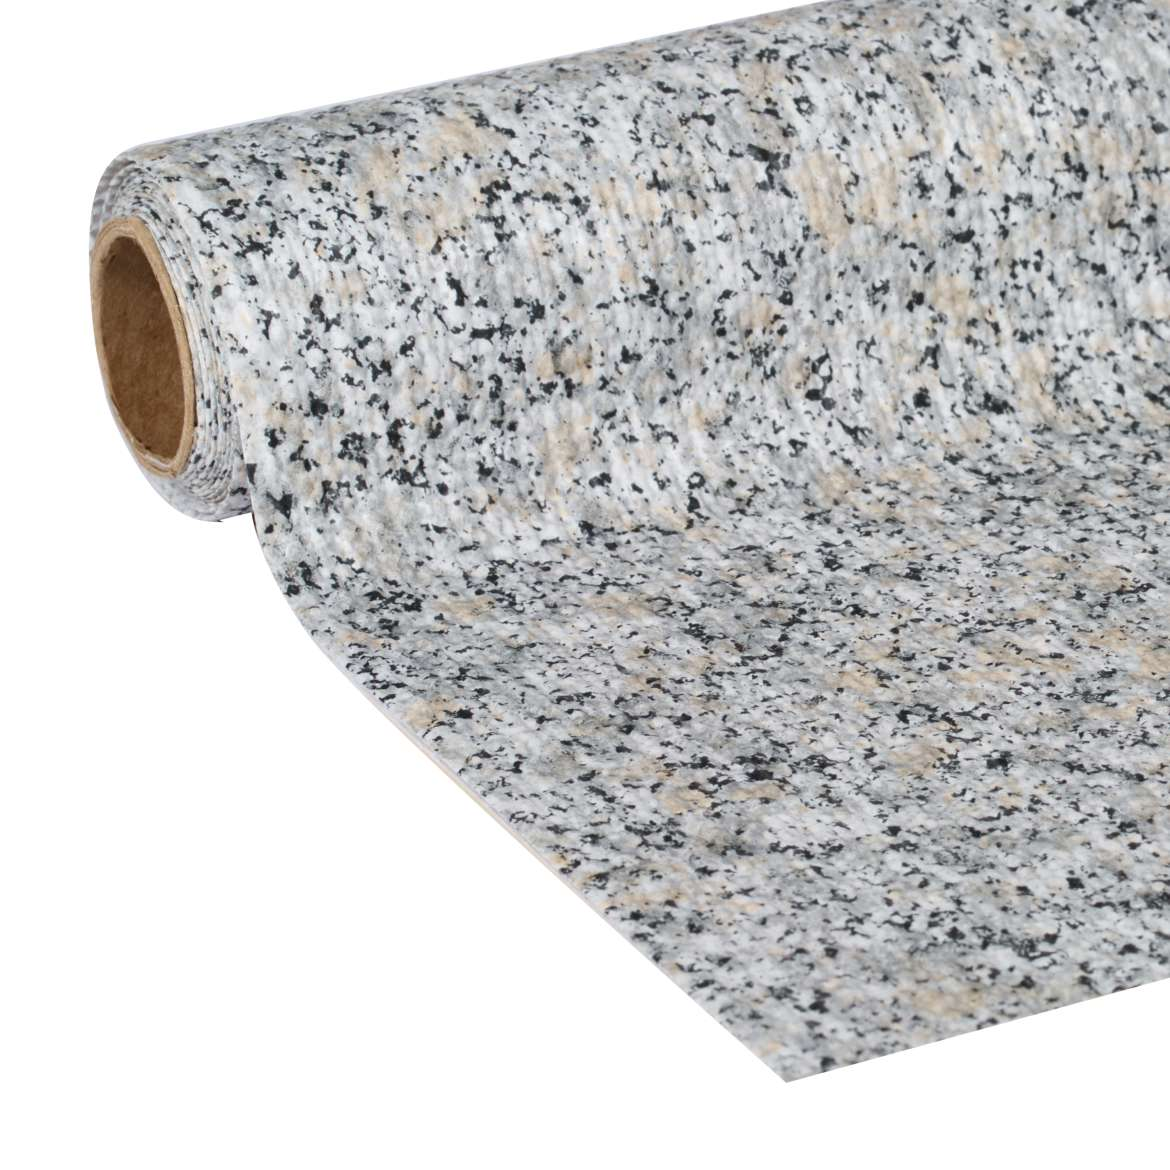 "Duck Brand, Smooth Top Easy Liner, Shelf Liner, 20""x 6', Grey Granite"